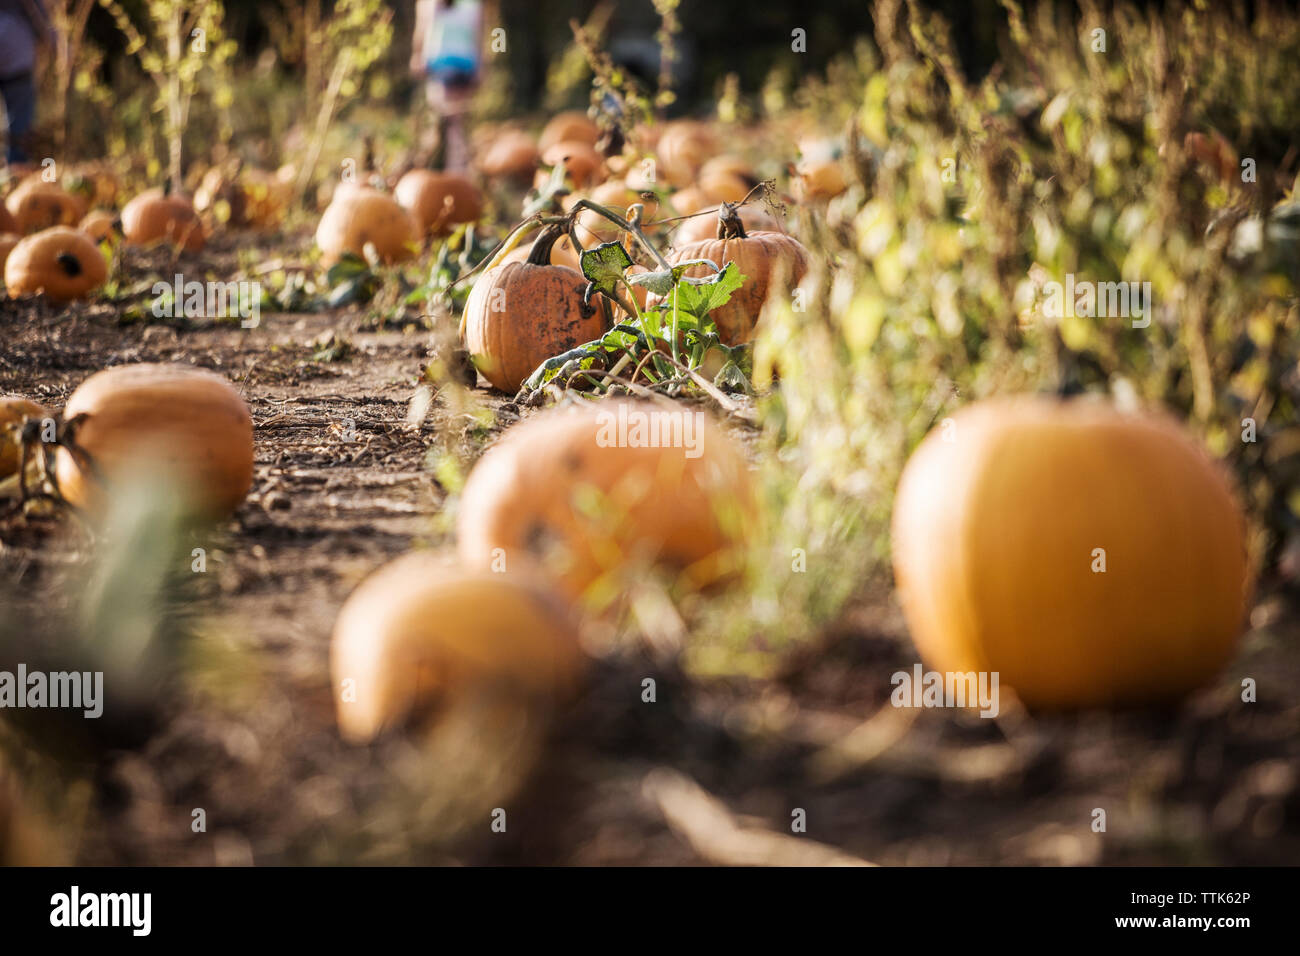 Pumpkins growing on field - Stock Image